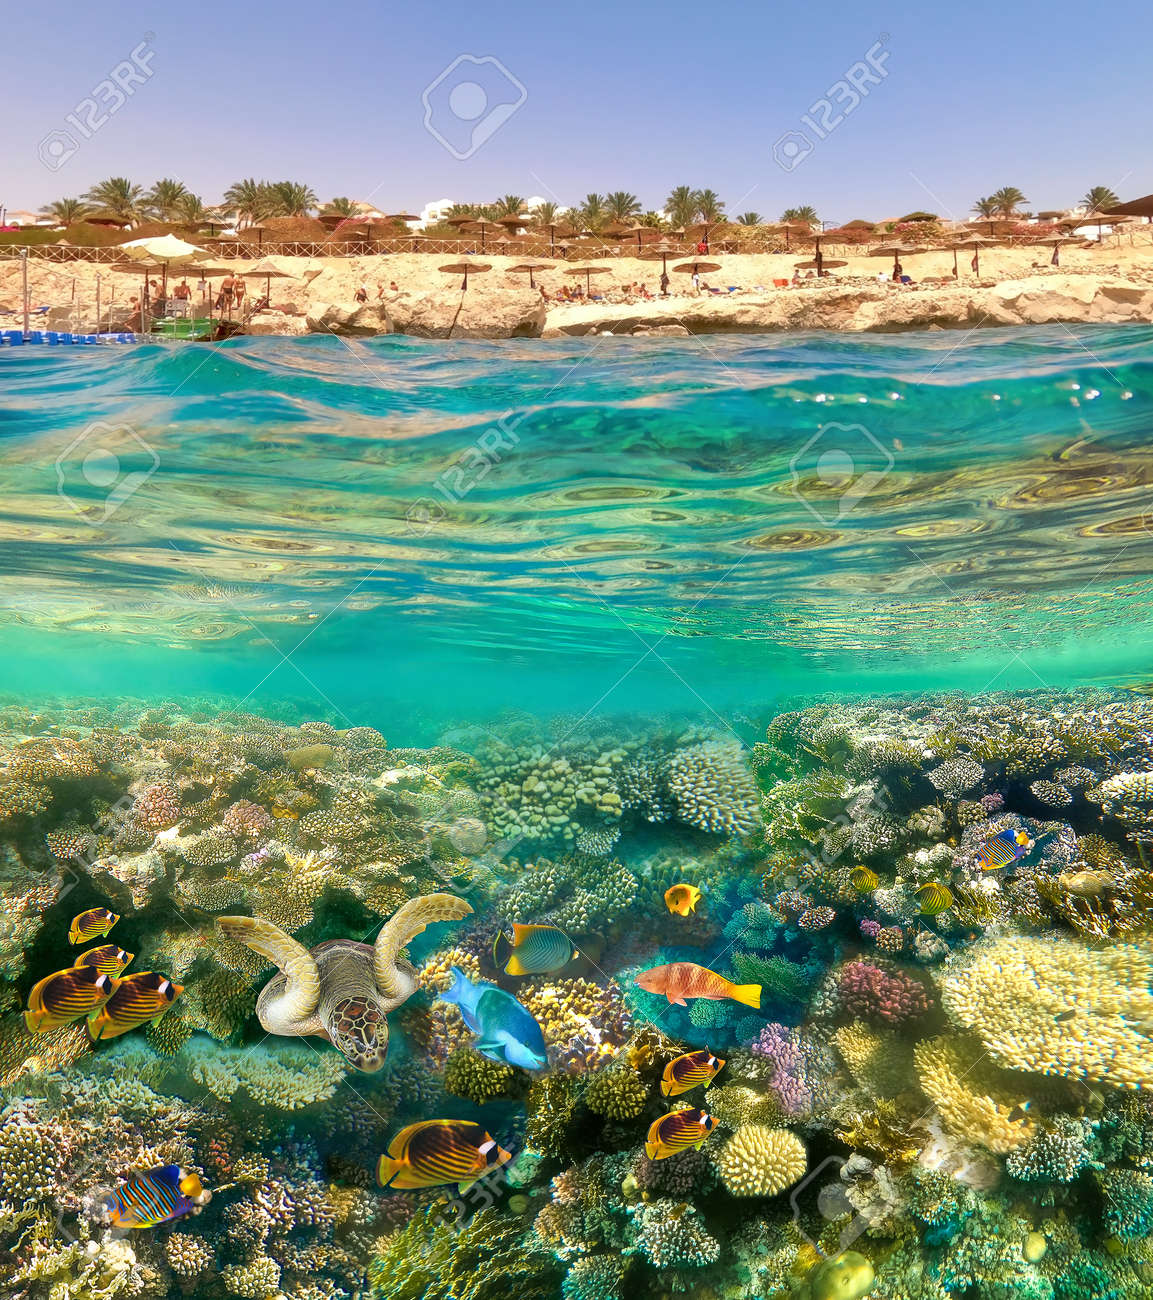 Underwater colorful tropical fishes at coral reef at Red Sea. - 156321712